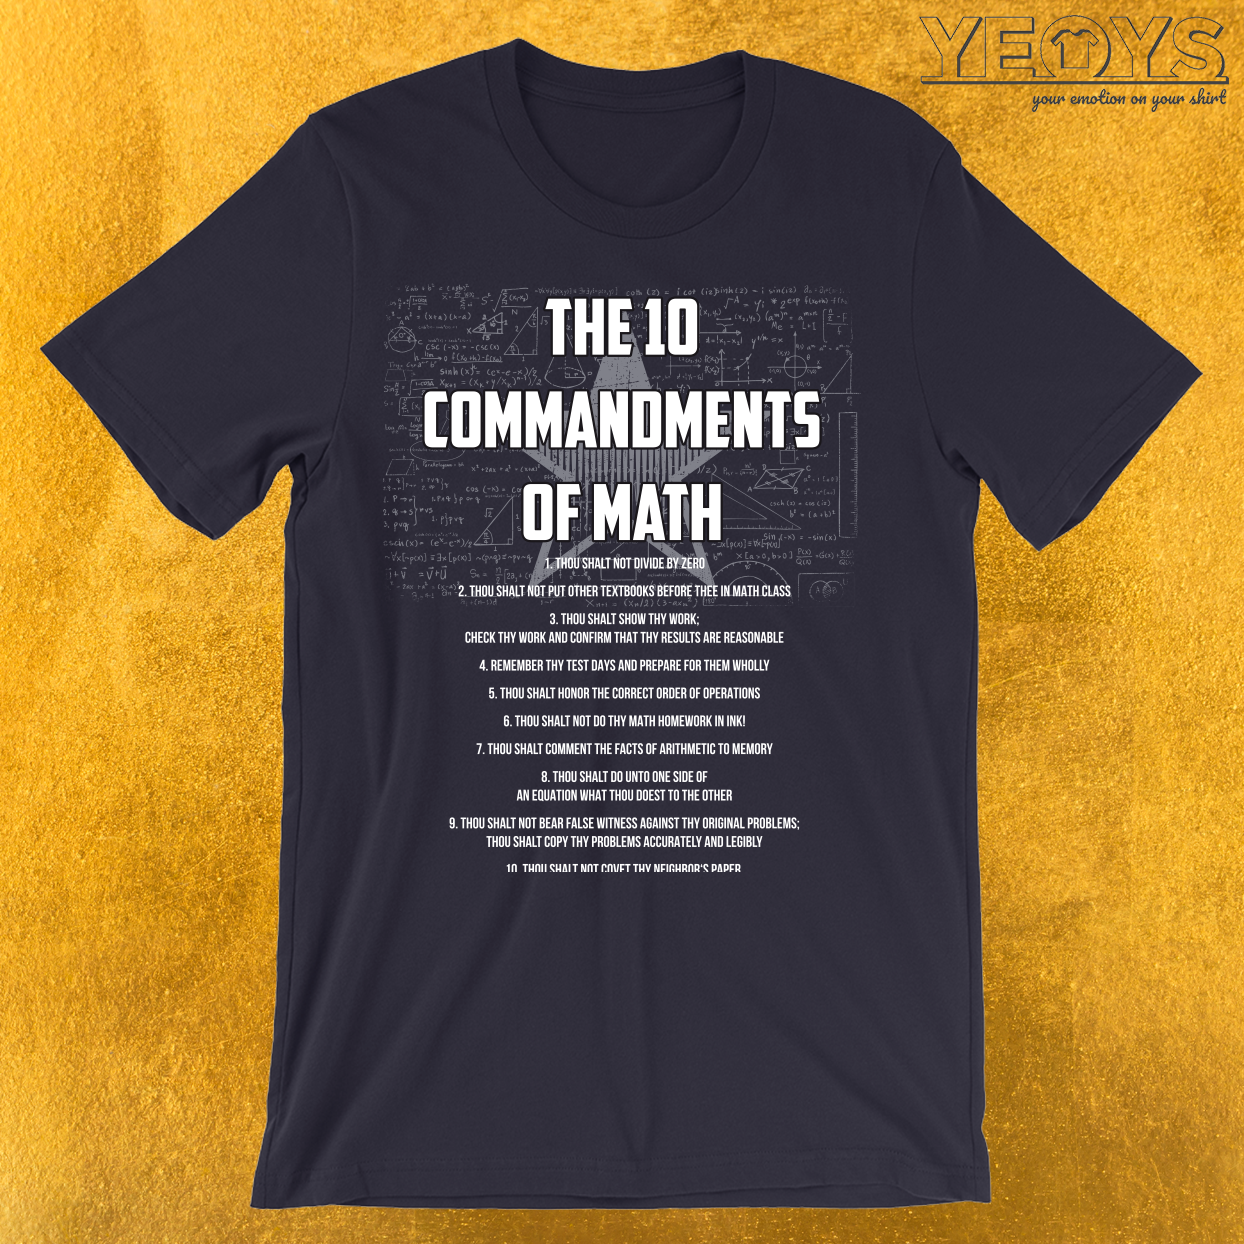 The 10 Commandments Of Math T-Shirt